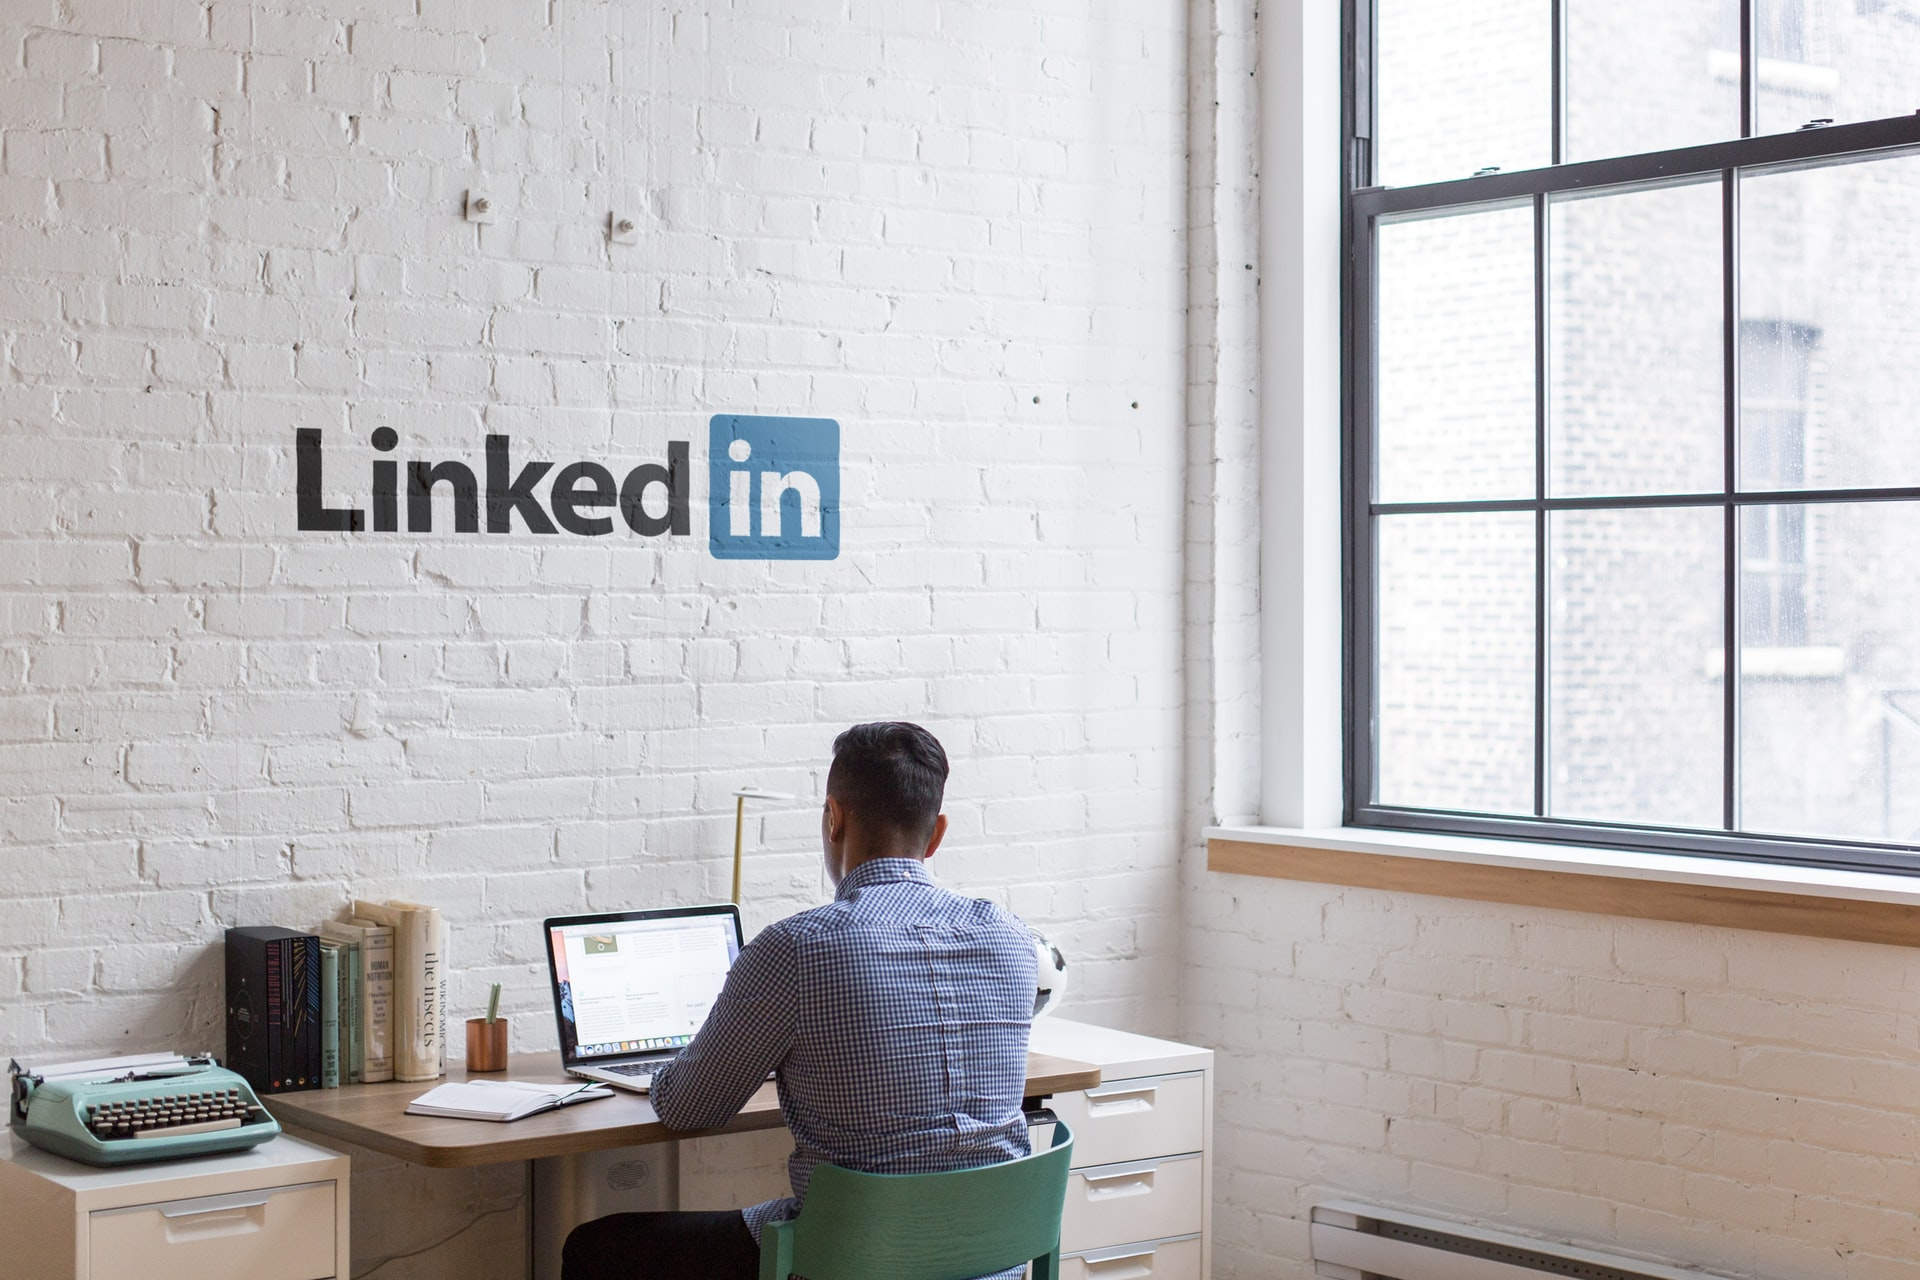 linkedin email extractor extension